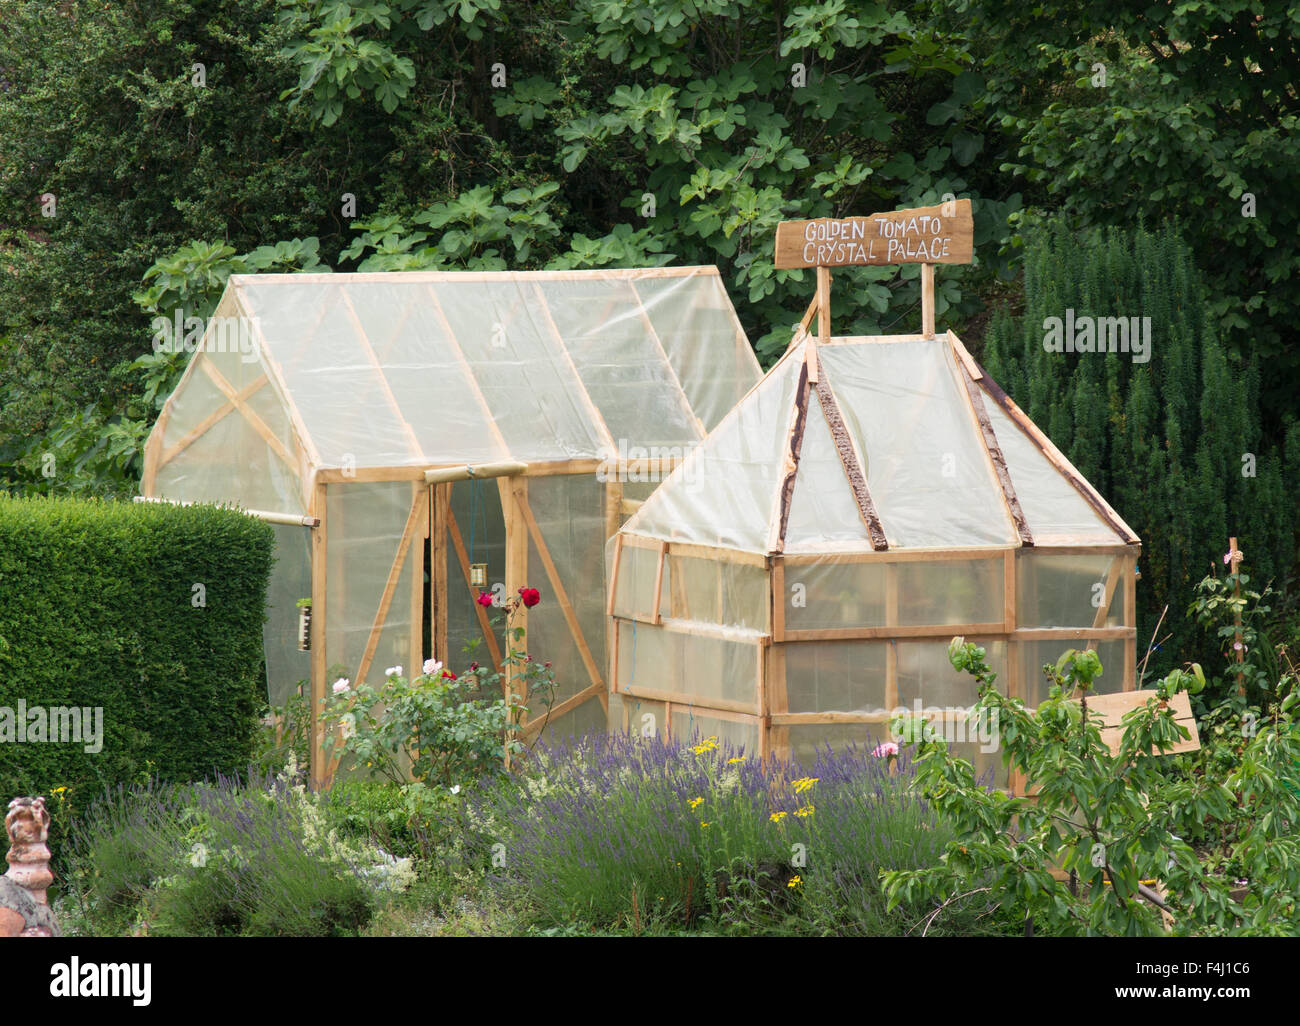 Wooden homemade plastic covered greenhouses seen at stock for Homemade greenhouse plastic